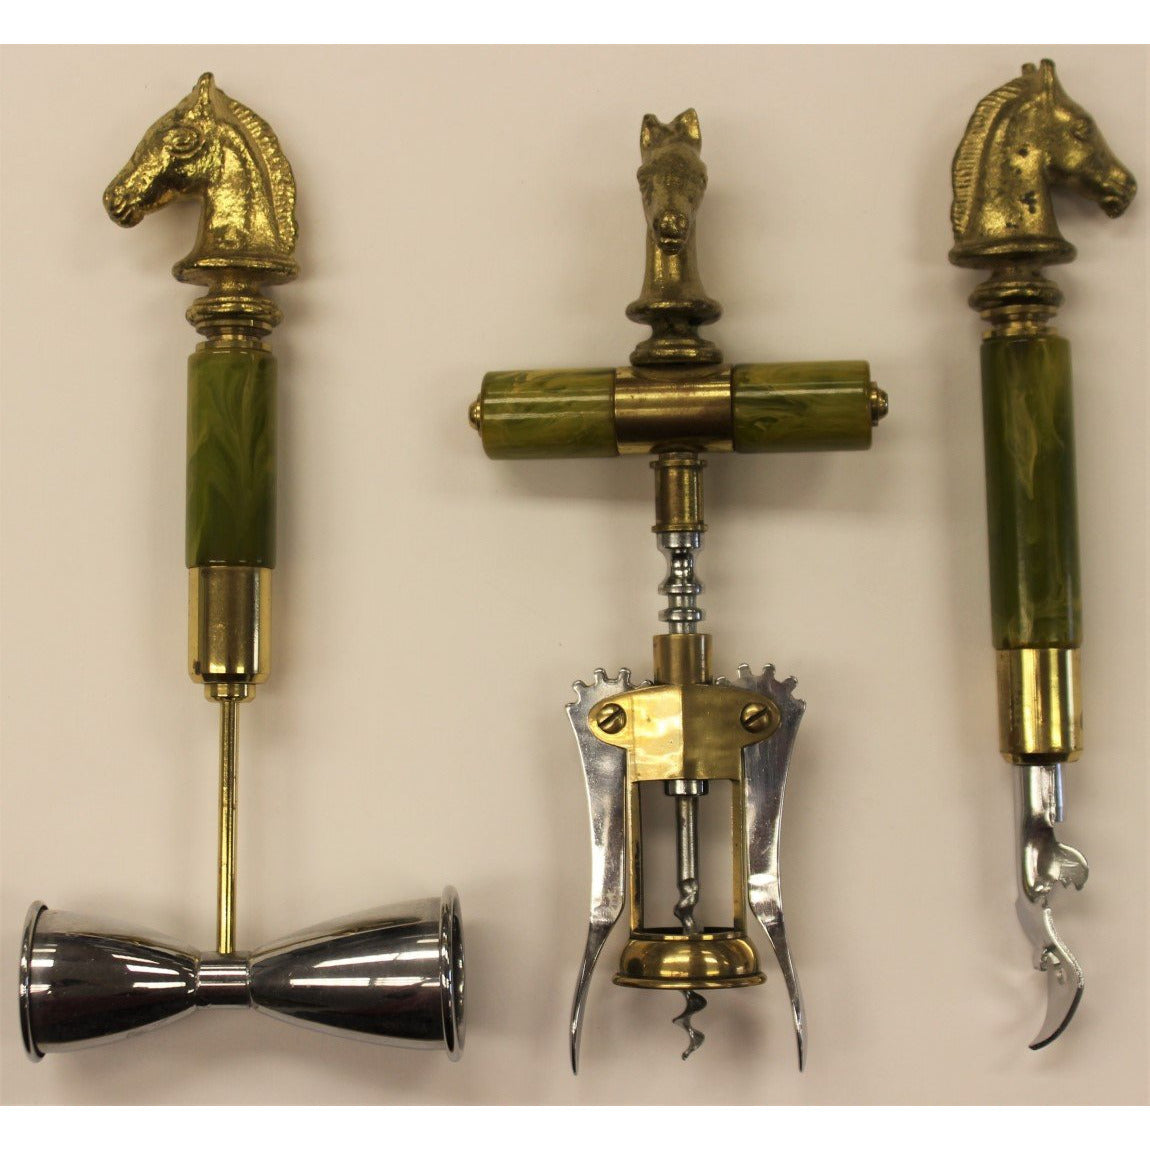 Brass Horse Head Jigger Cups, Bottle Opener and Cork Screw w/ Marble Stem